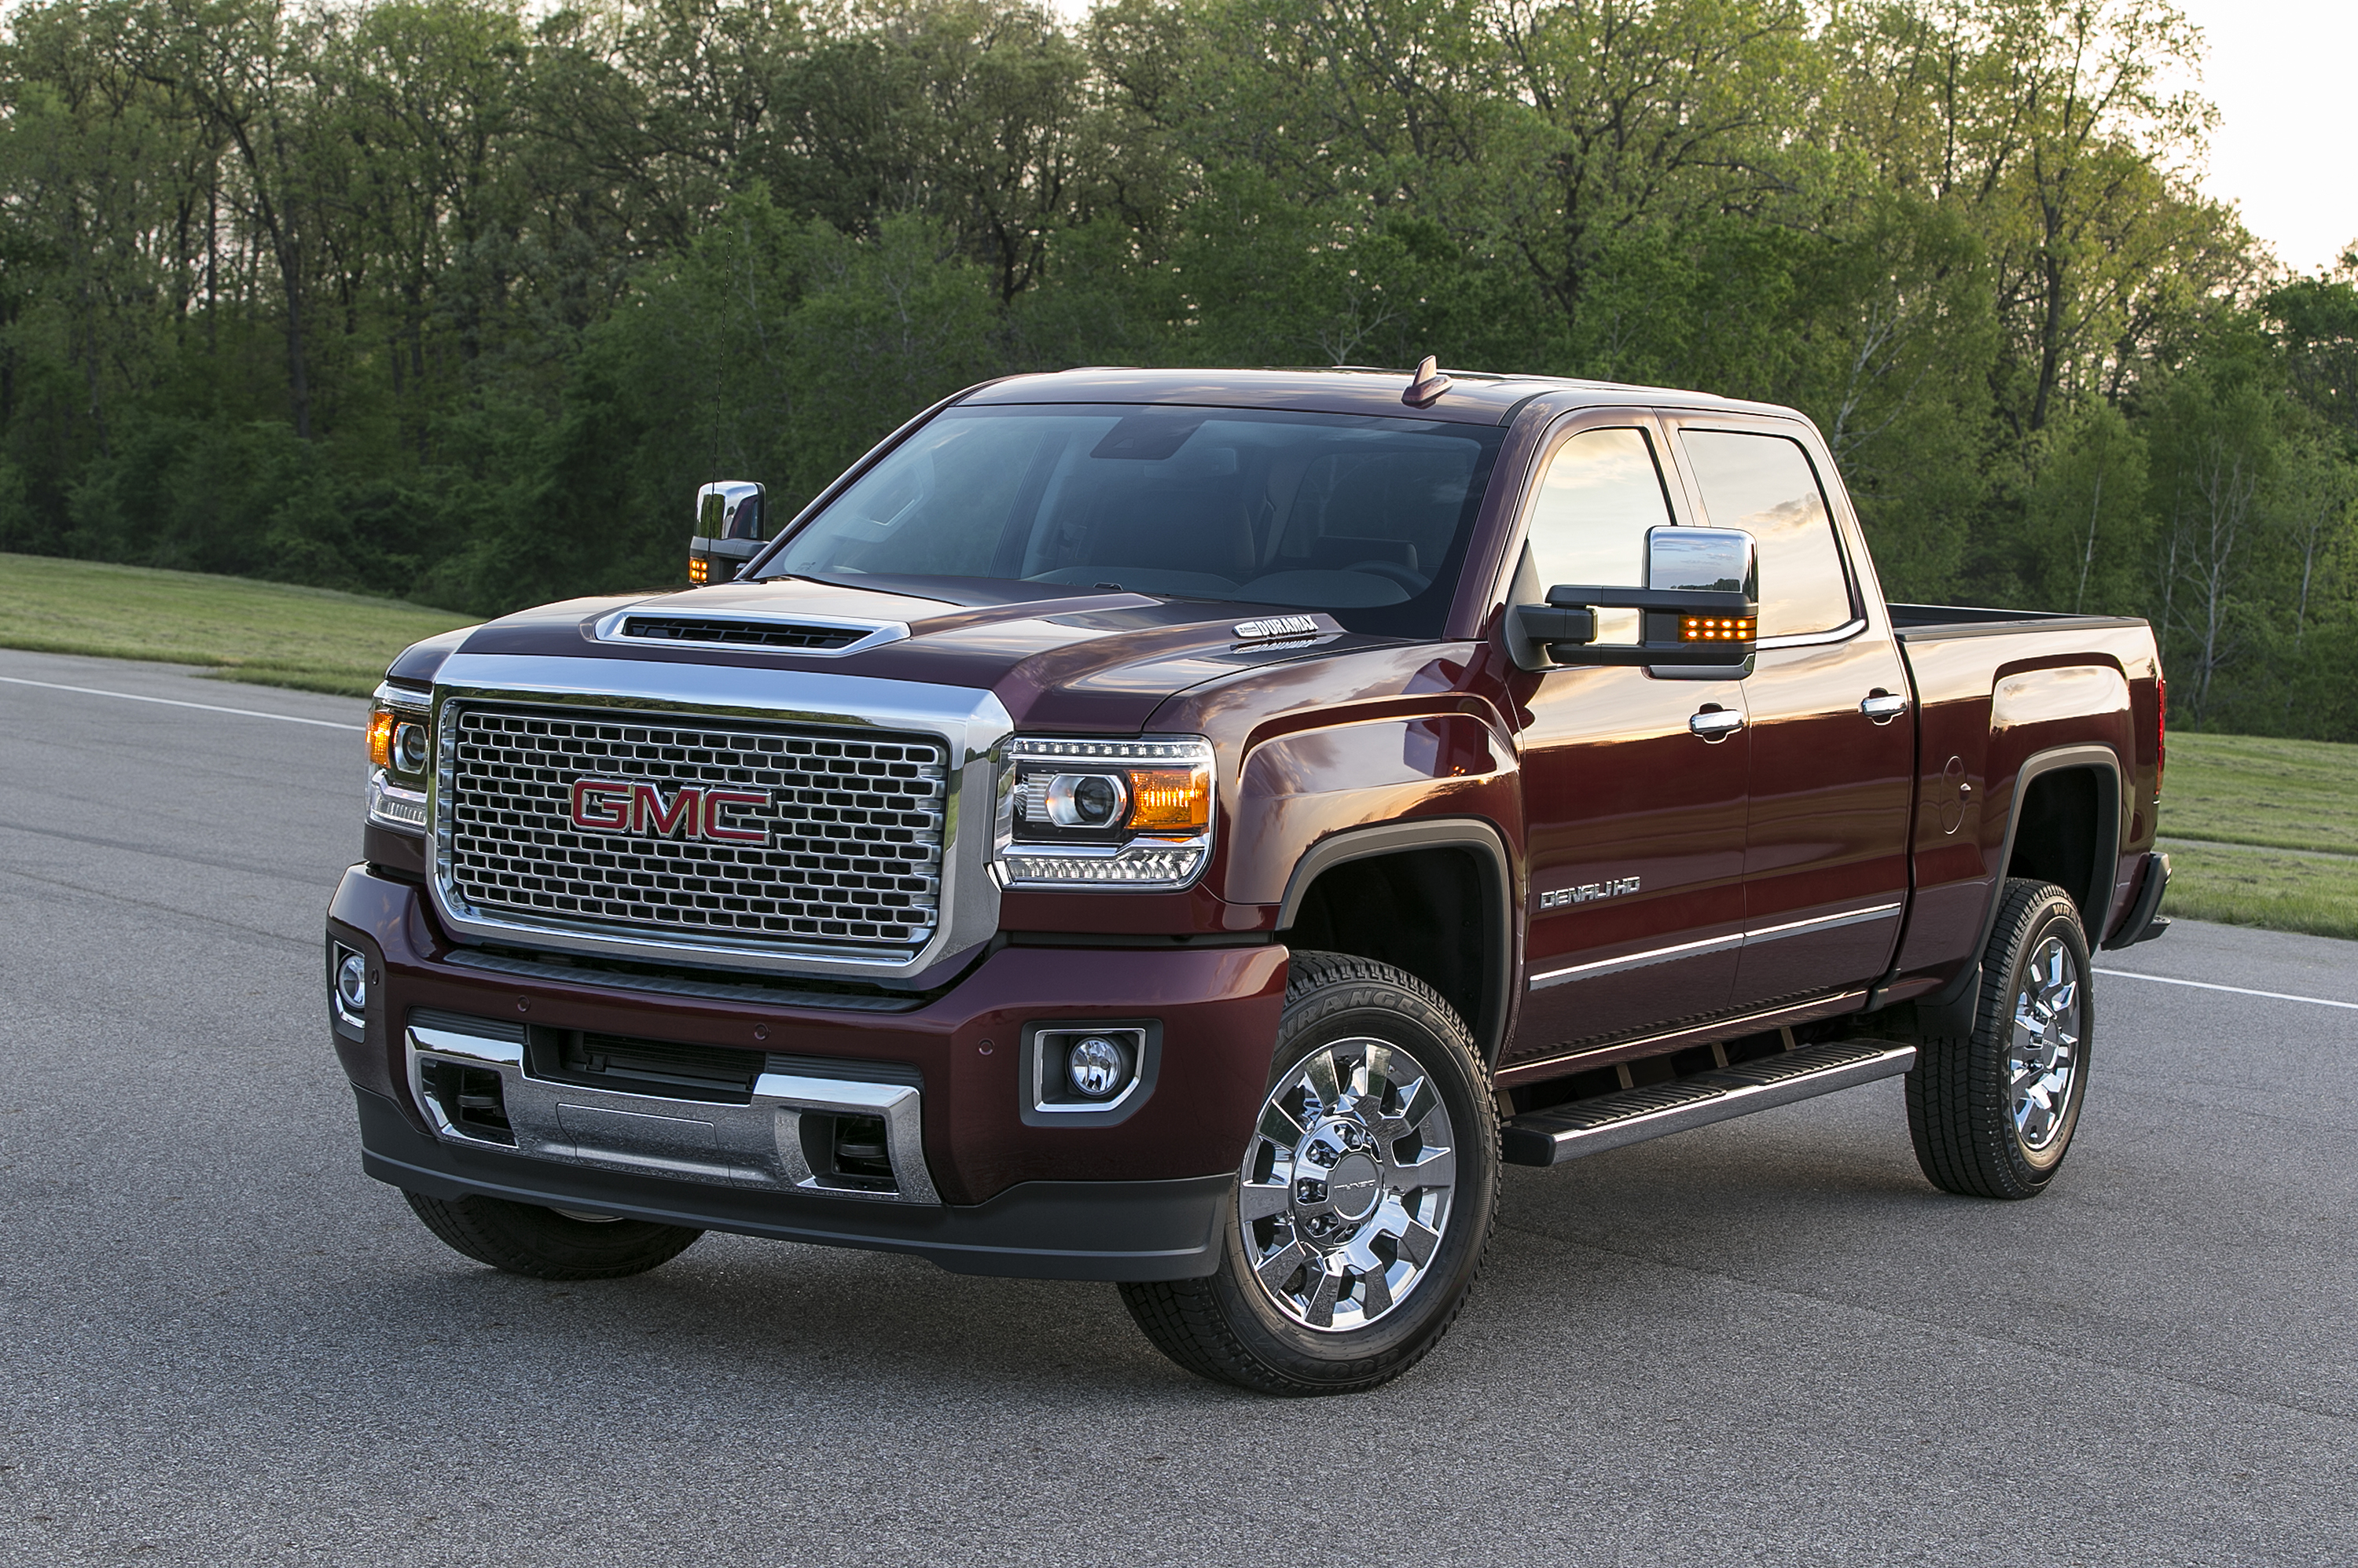 2017 gmc sierra denali 2500 heavy duty hides something under its hood scoop autoevolution